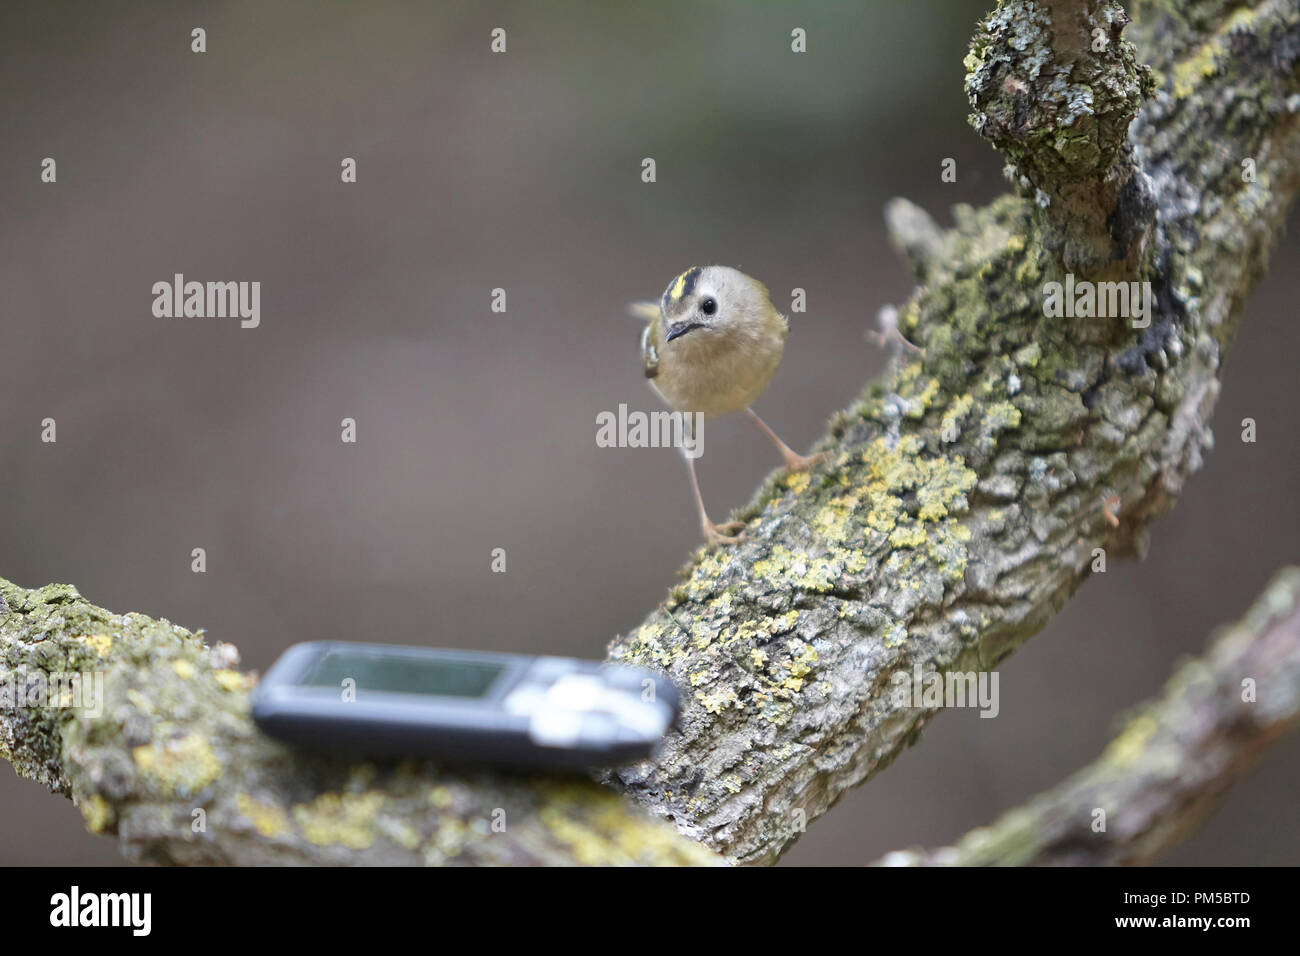 Goldcrest, Regulus regulus, the UK's smallest bird, listening to a recording of its song. - Stock Image